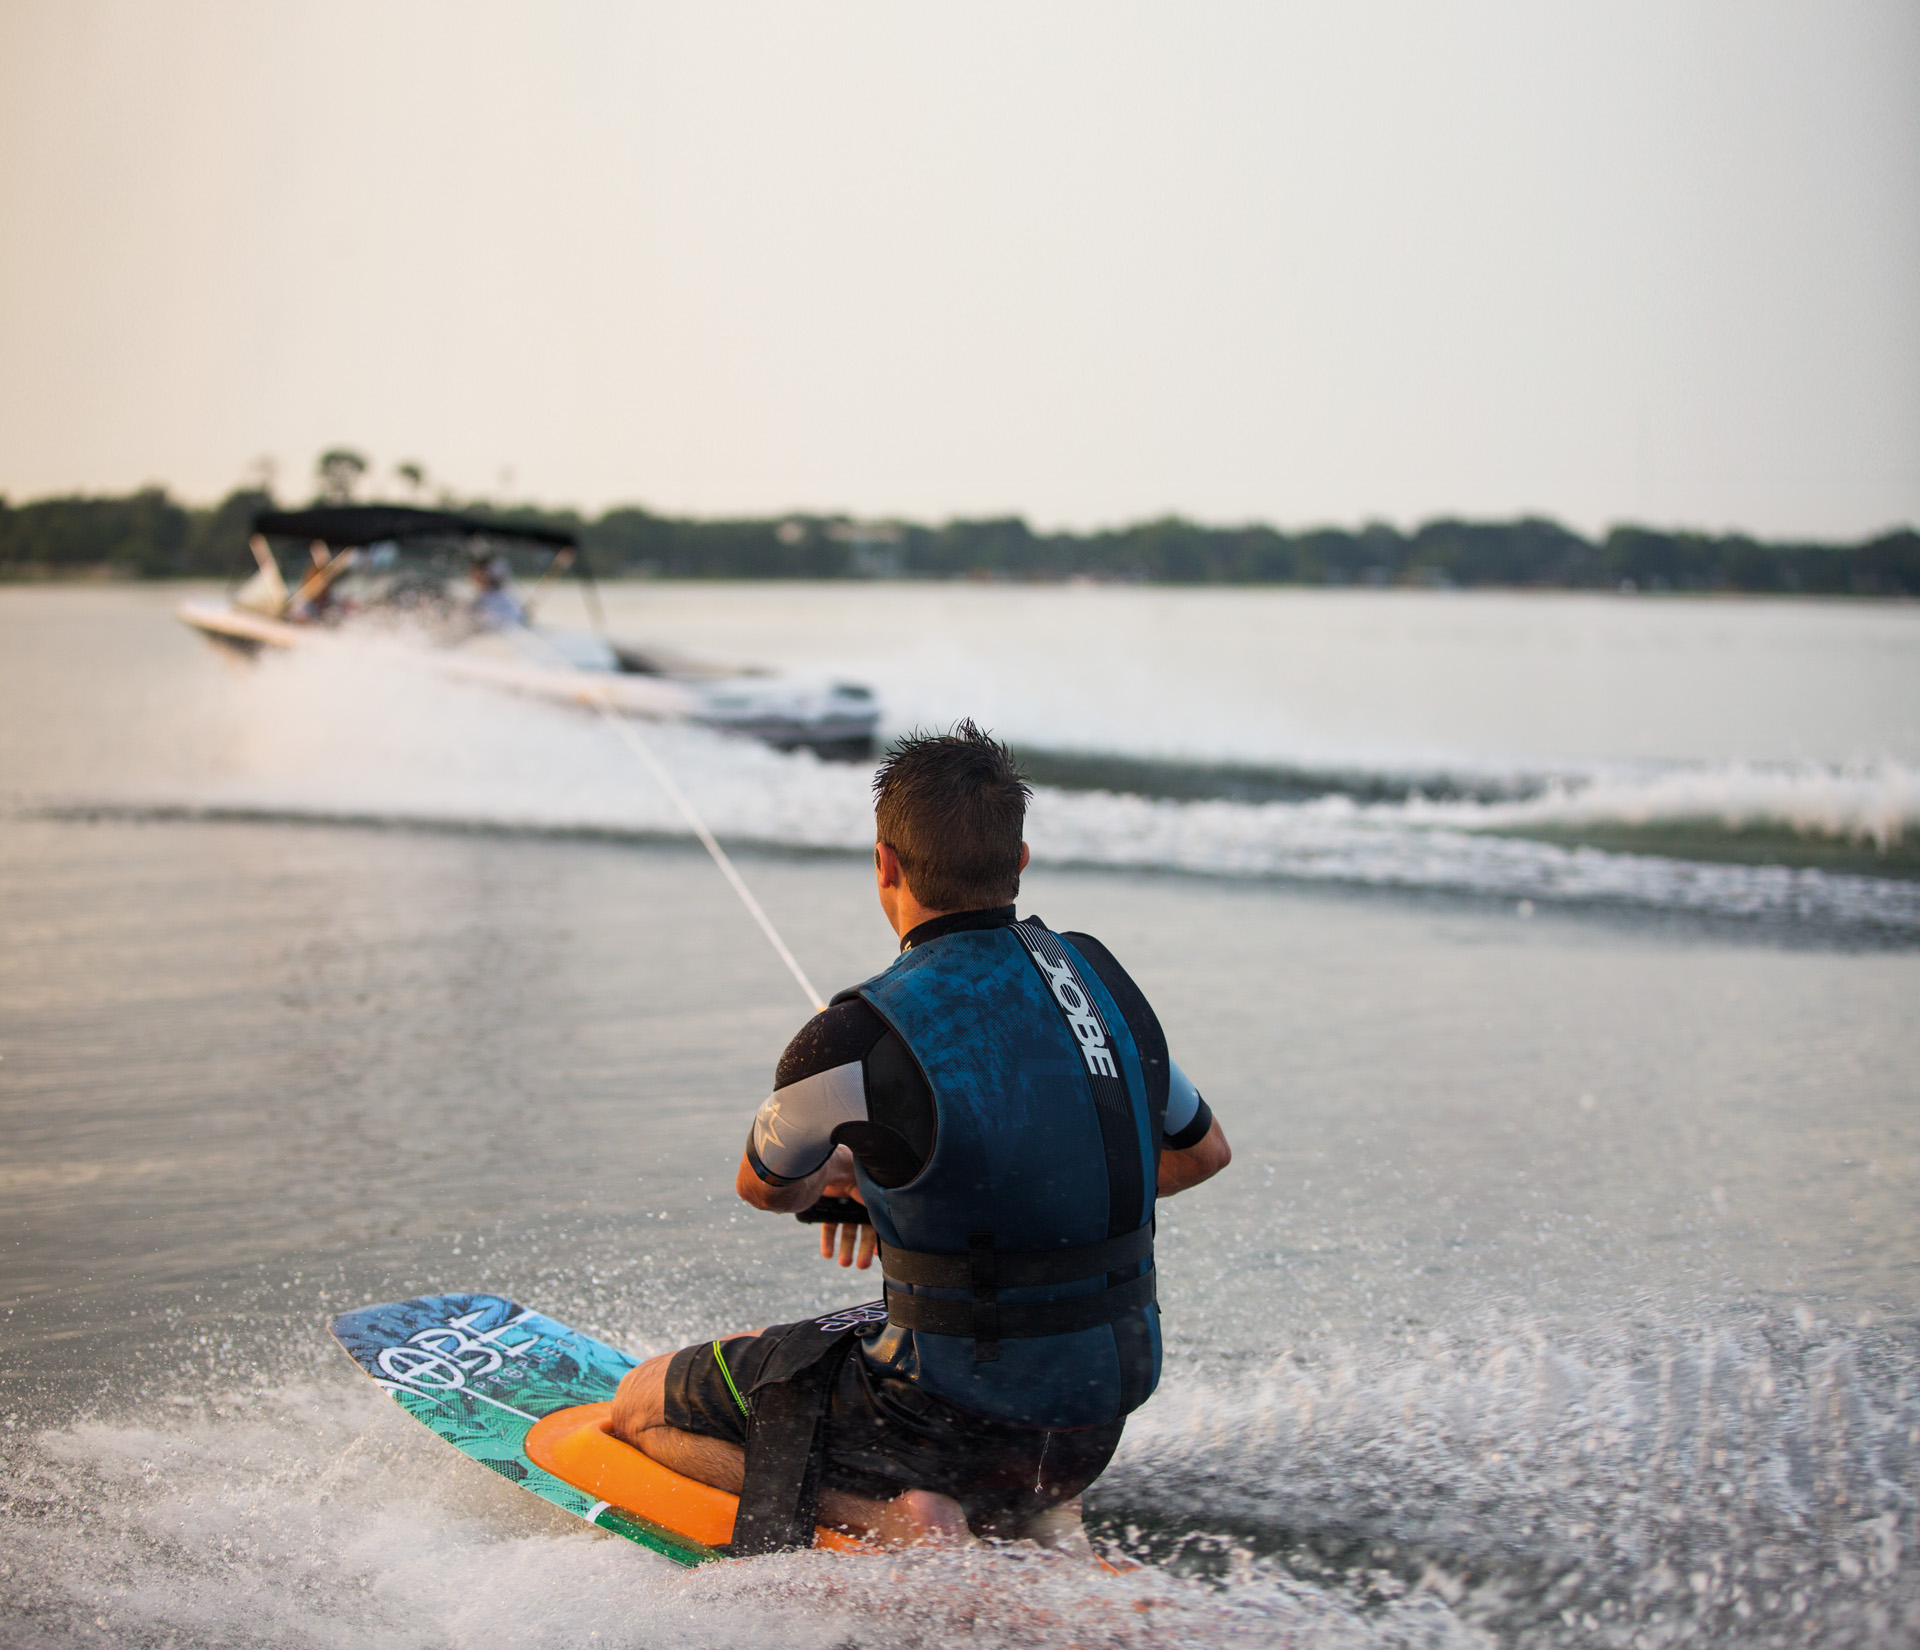 Be the chosen one on the Jobe Prophecy kneeboard